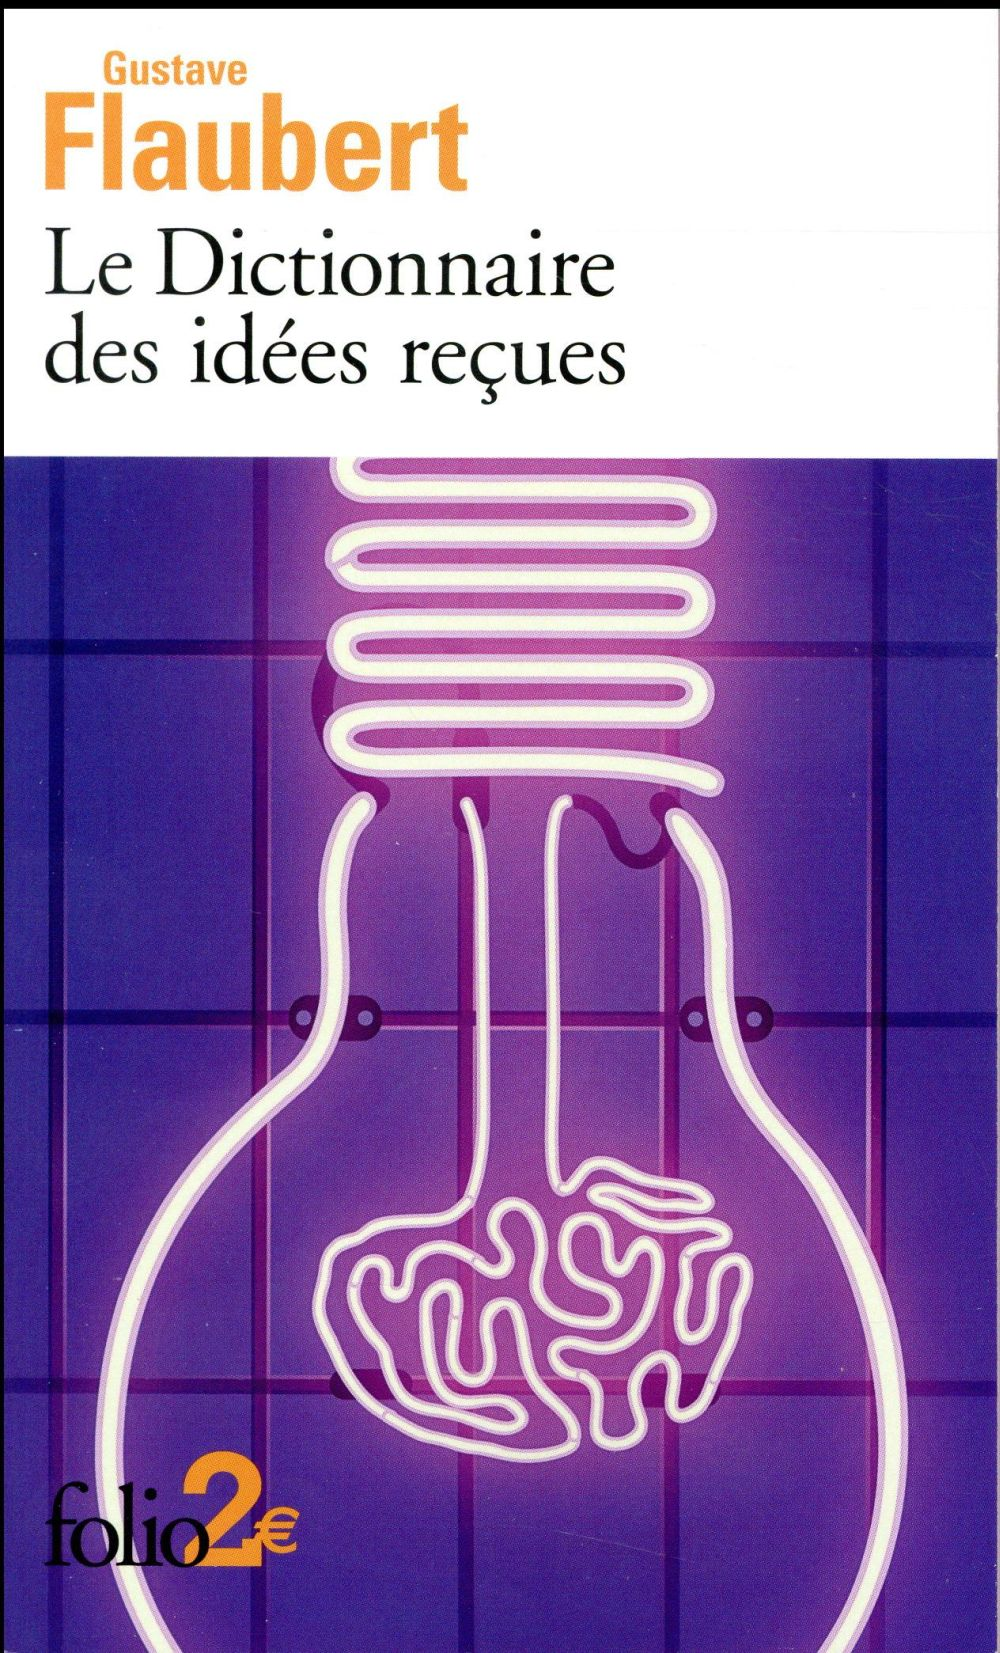 Le Dictionnaire des idées reçues